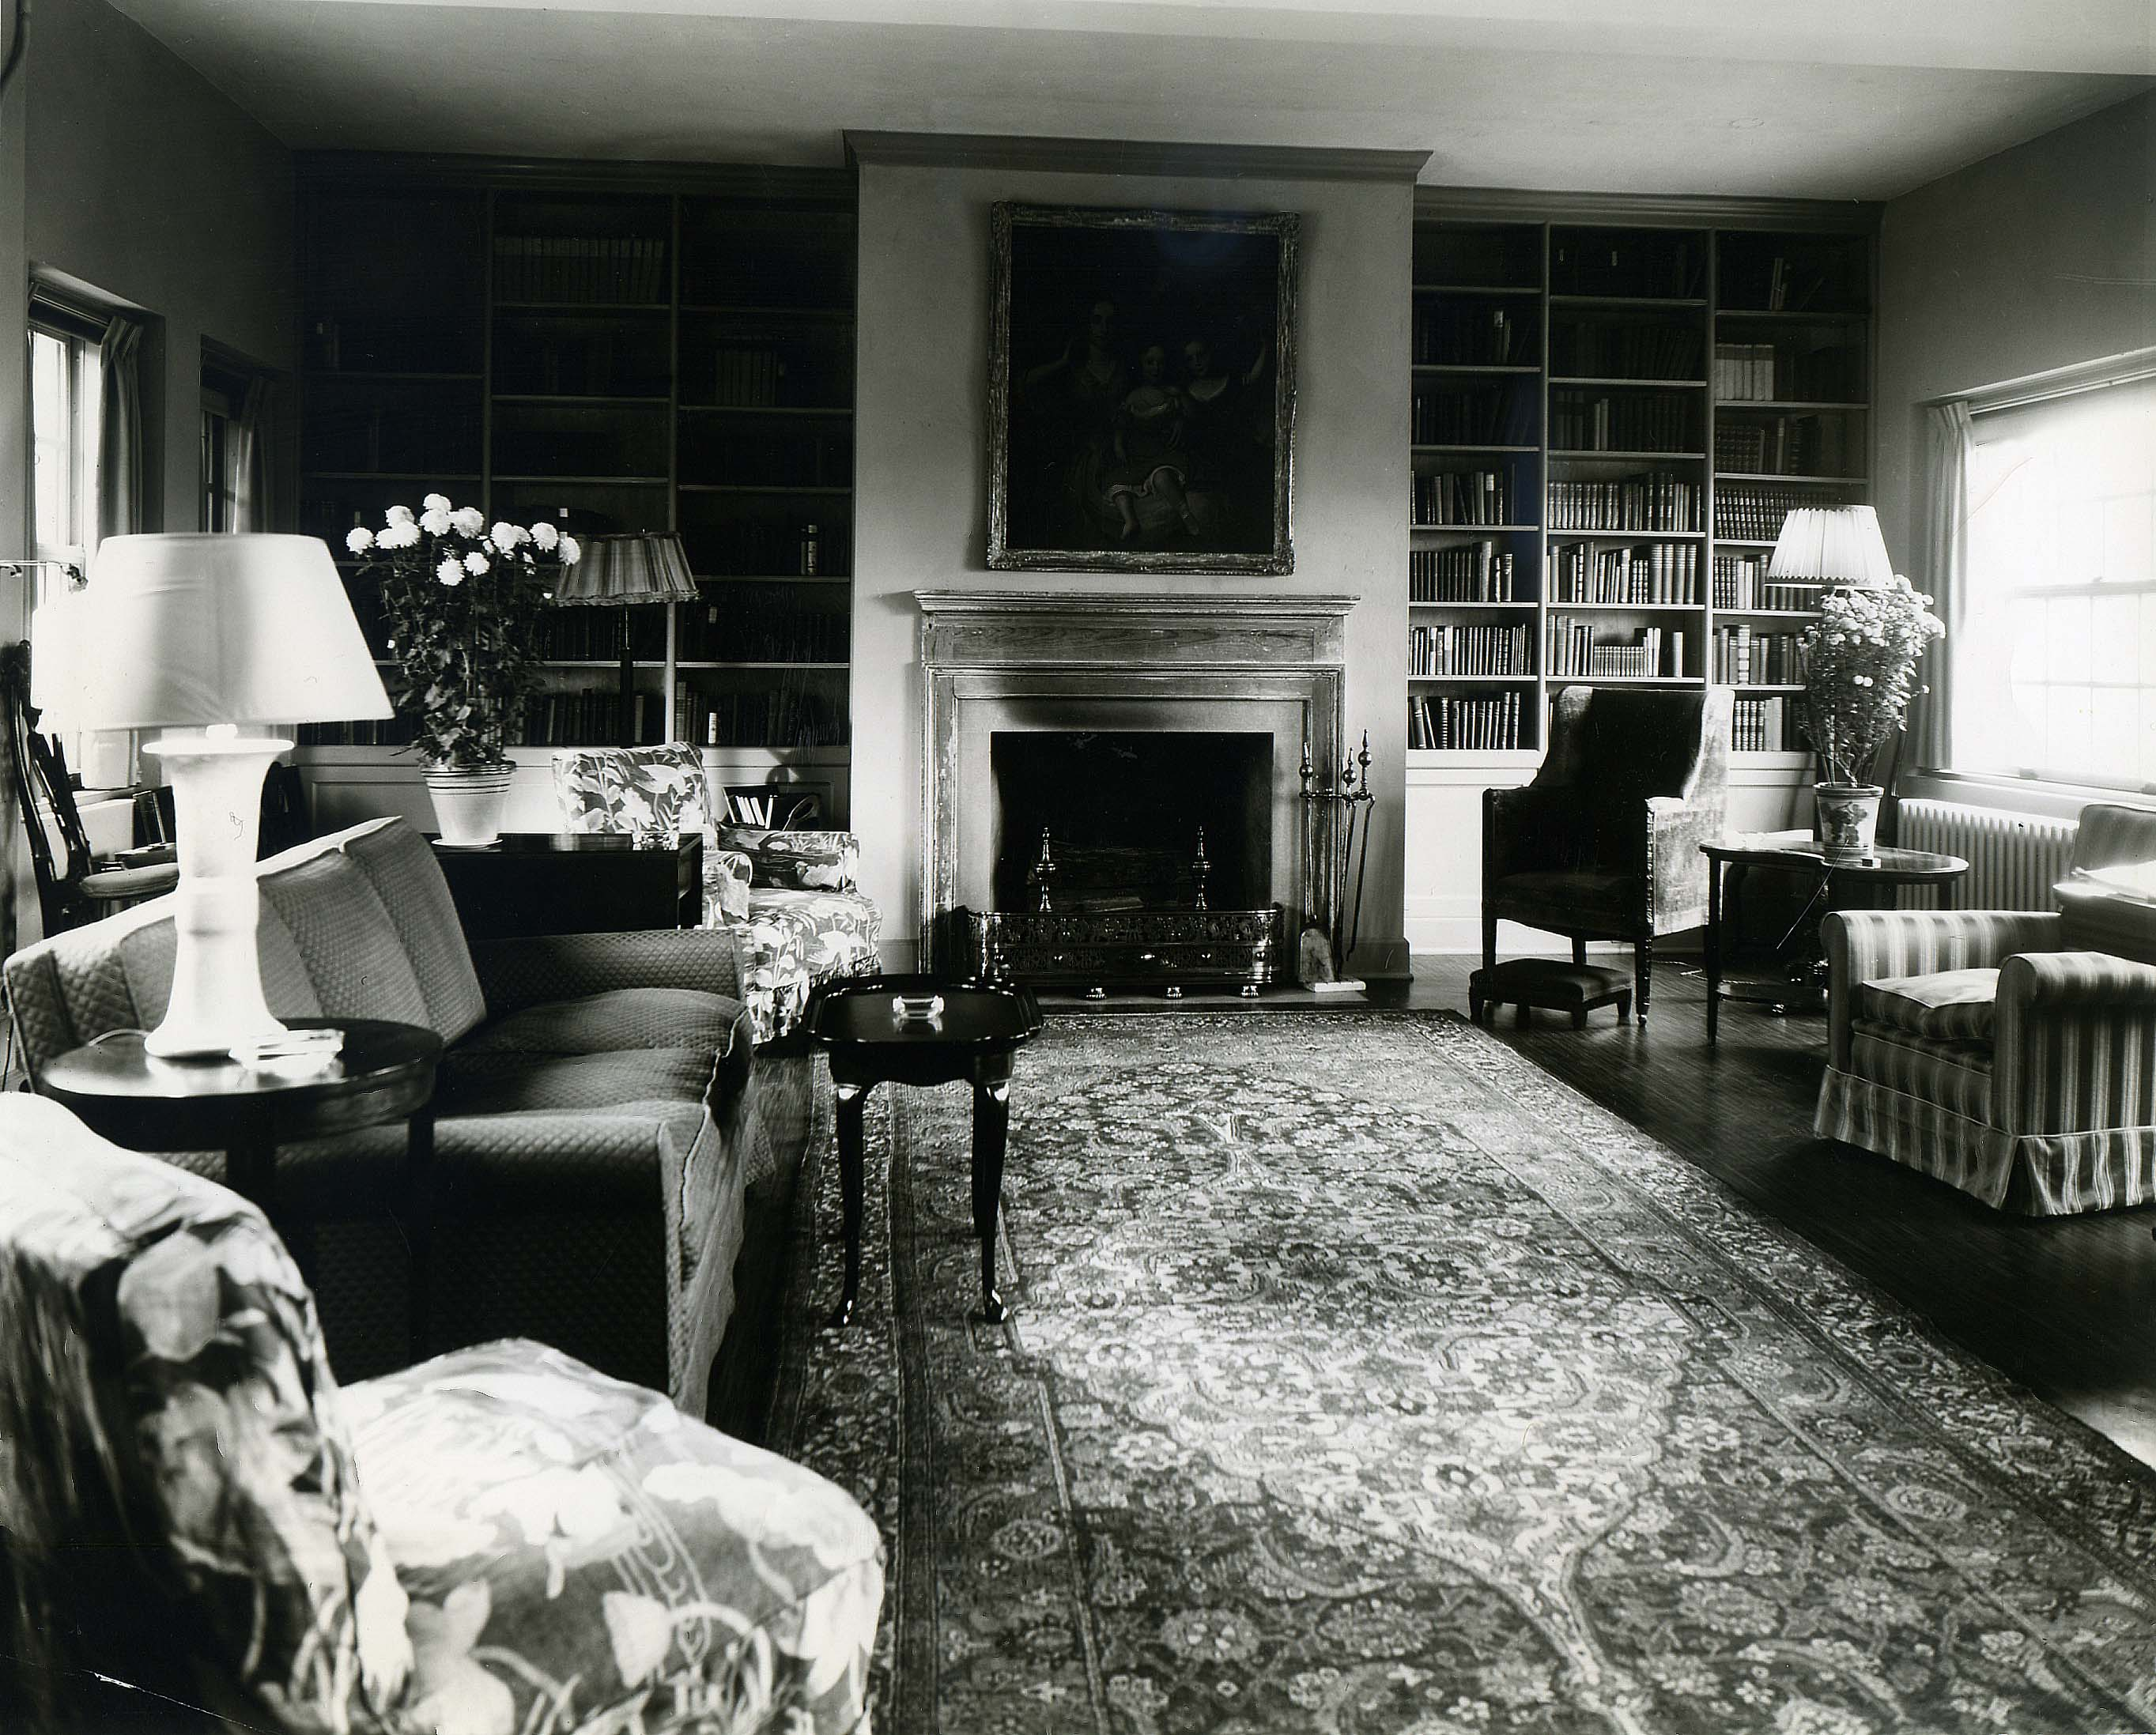 Then and now accommodating the fellows dumbarton oaks for The family room research